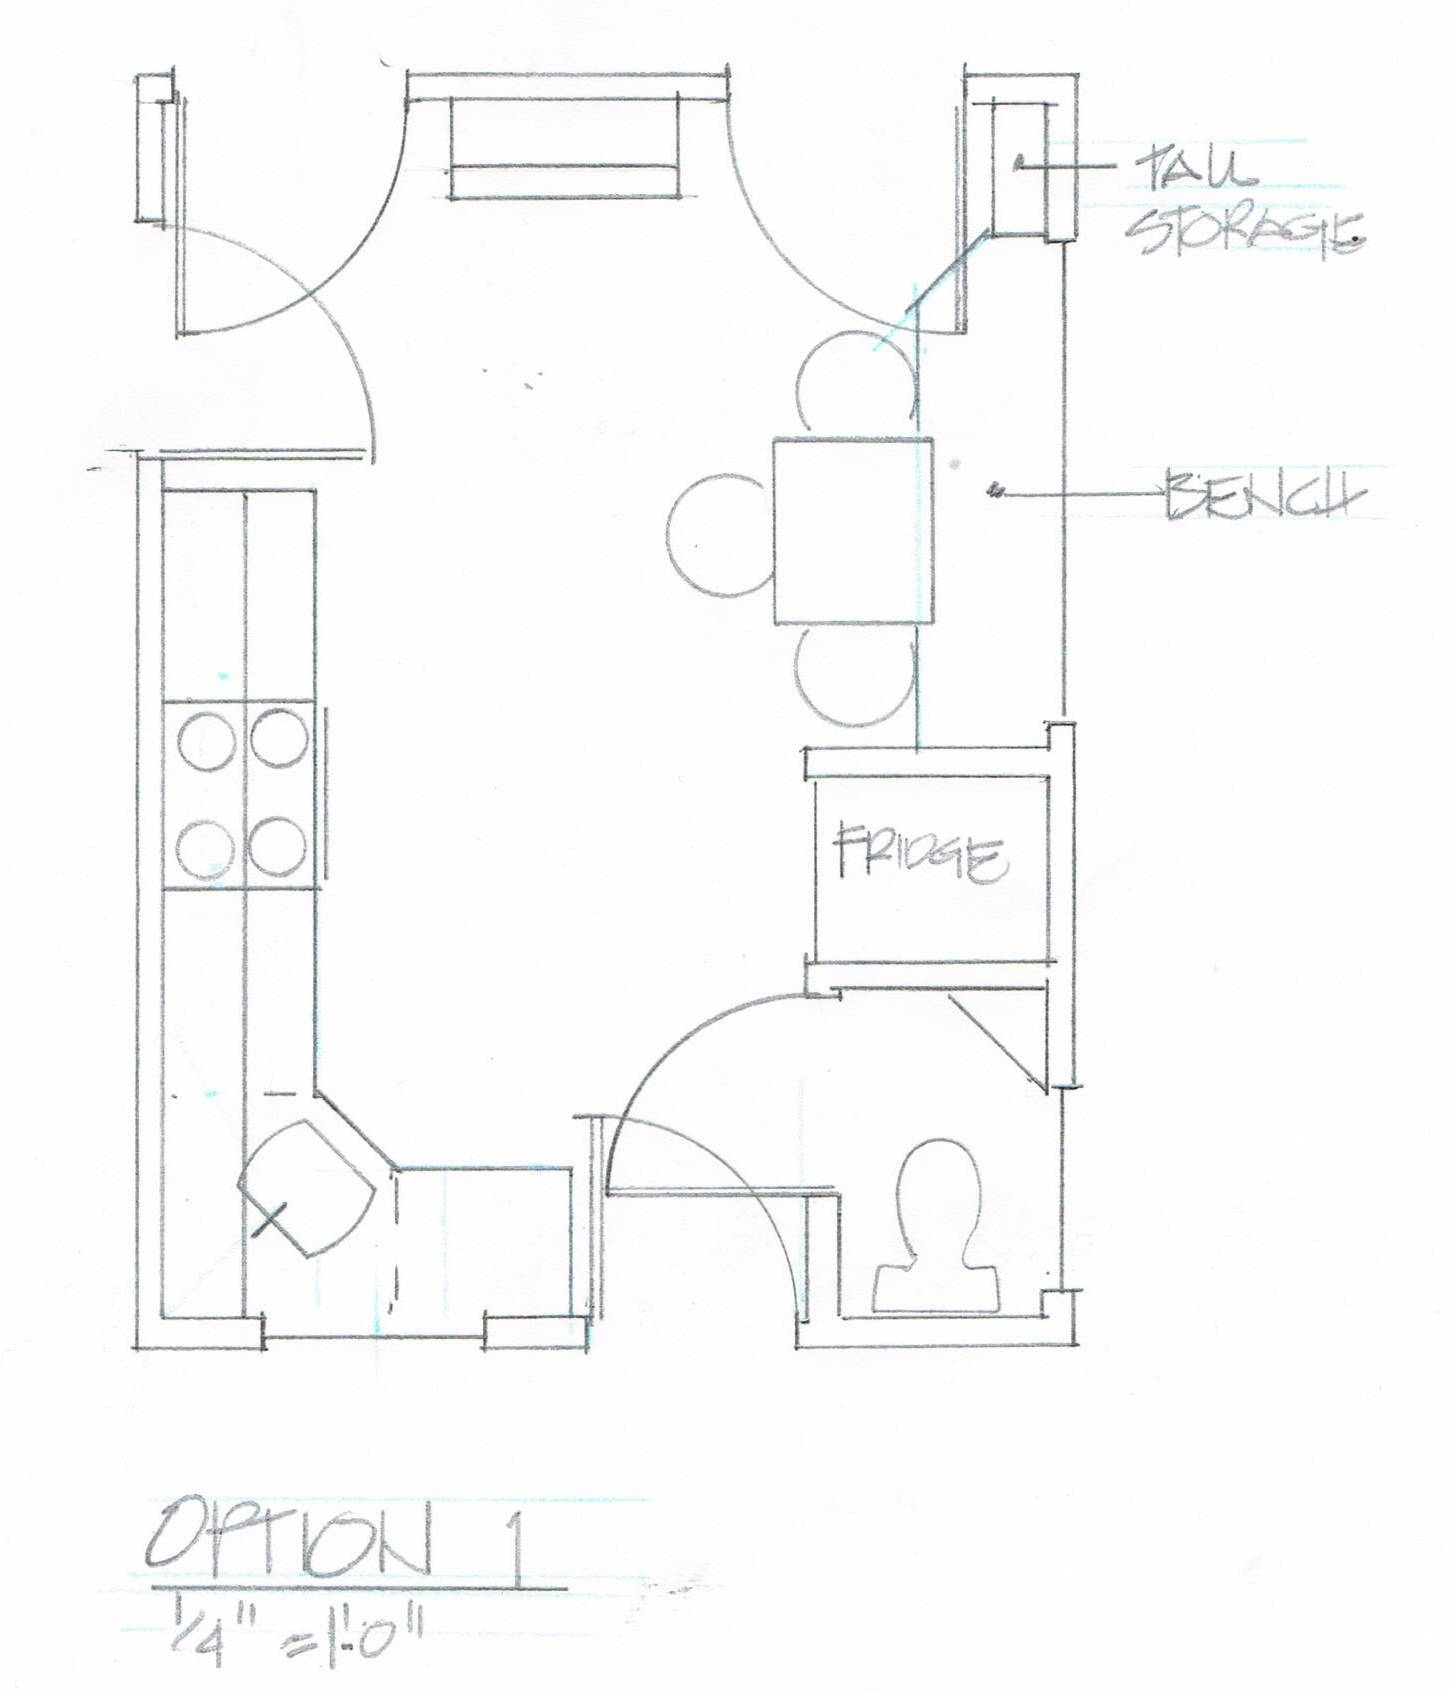 Kitchen clients drawing autocad archicad planner designs kitchen kitchen clients drawing autocad archicad planner designs kitchen layouts blueprint portfolio kitchens design ideas the philosophy malvernweather Gallery